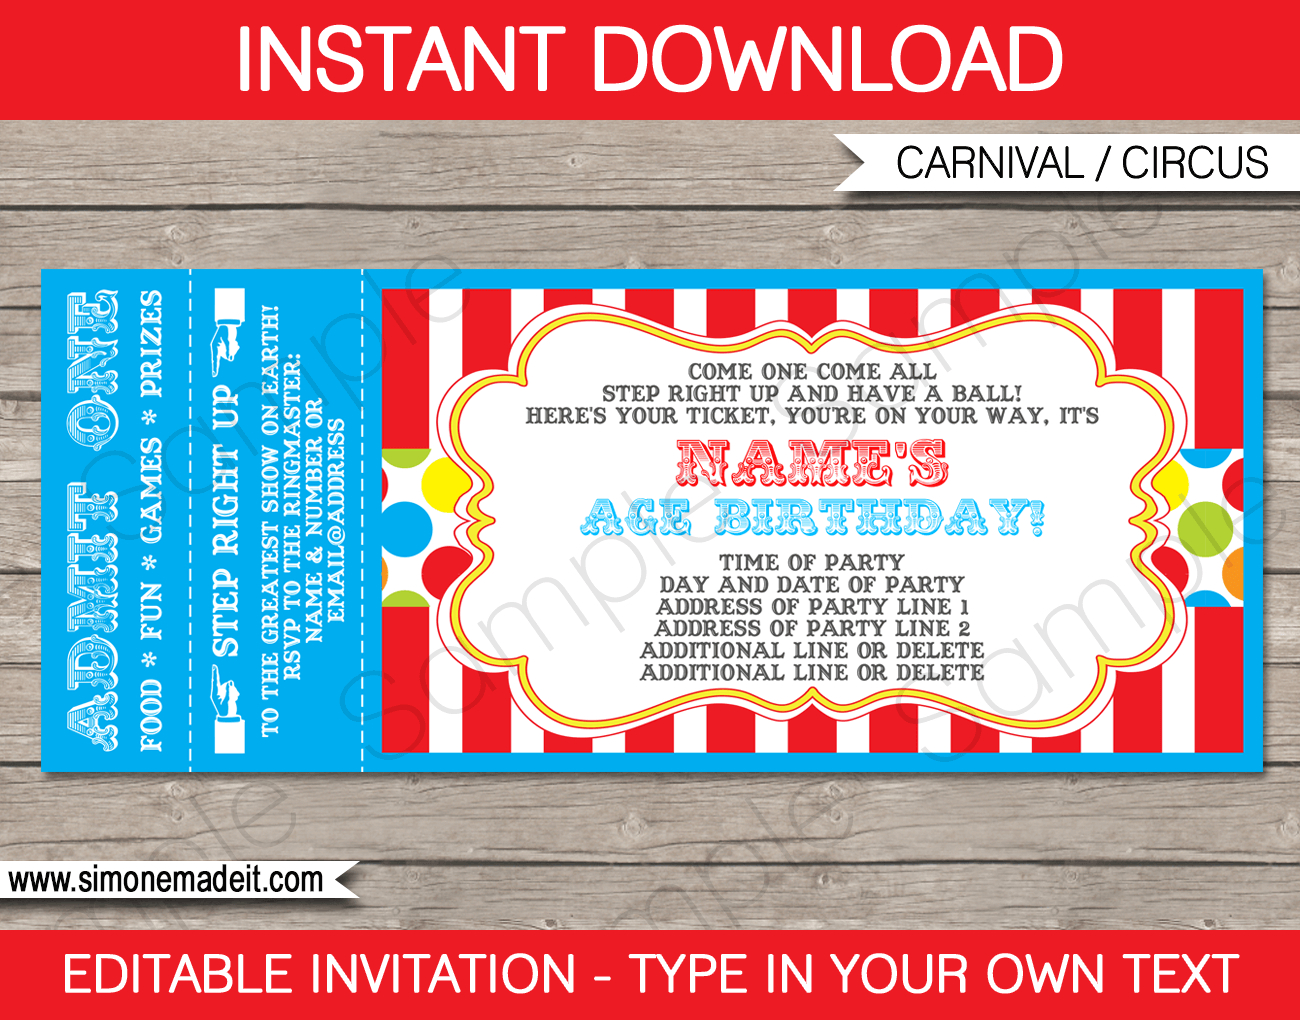 Ticket Invitation Maker - Kaza.psstech.co - Free Printable Movie Ticket Birthday Party Invitations